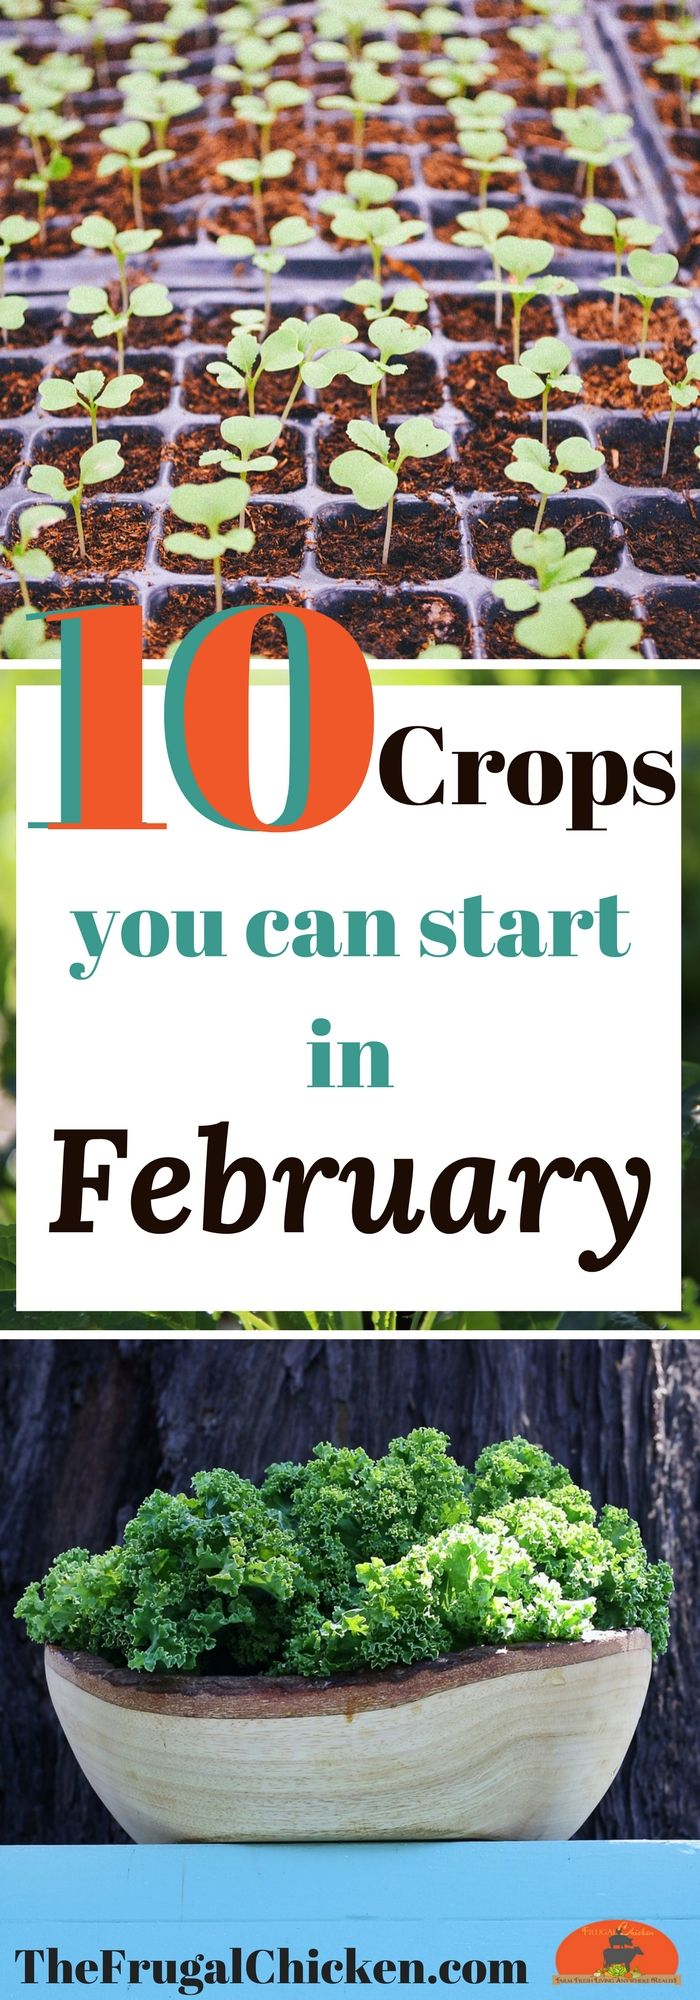 It's not quite spring yet. but you're ready for gardening season, right? Here's 10 crops you can start from seed in February to scratch the itch!